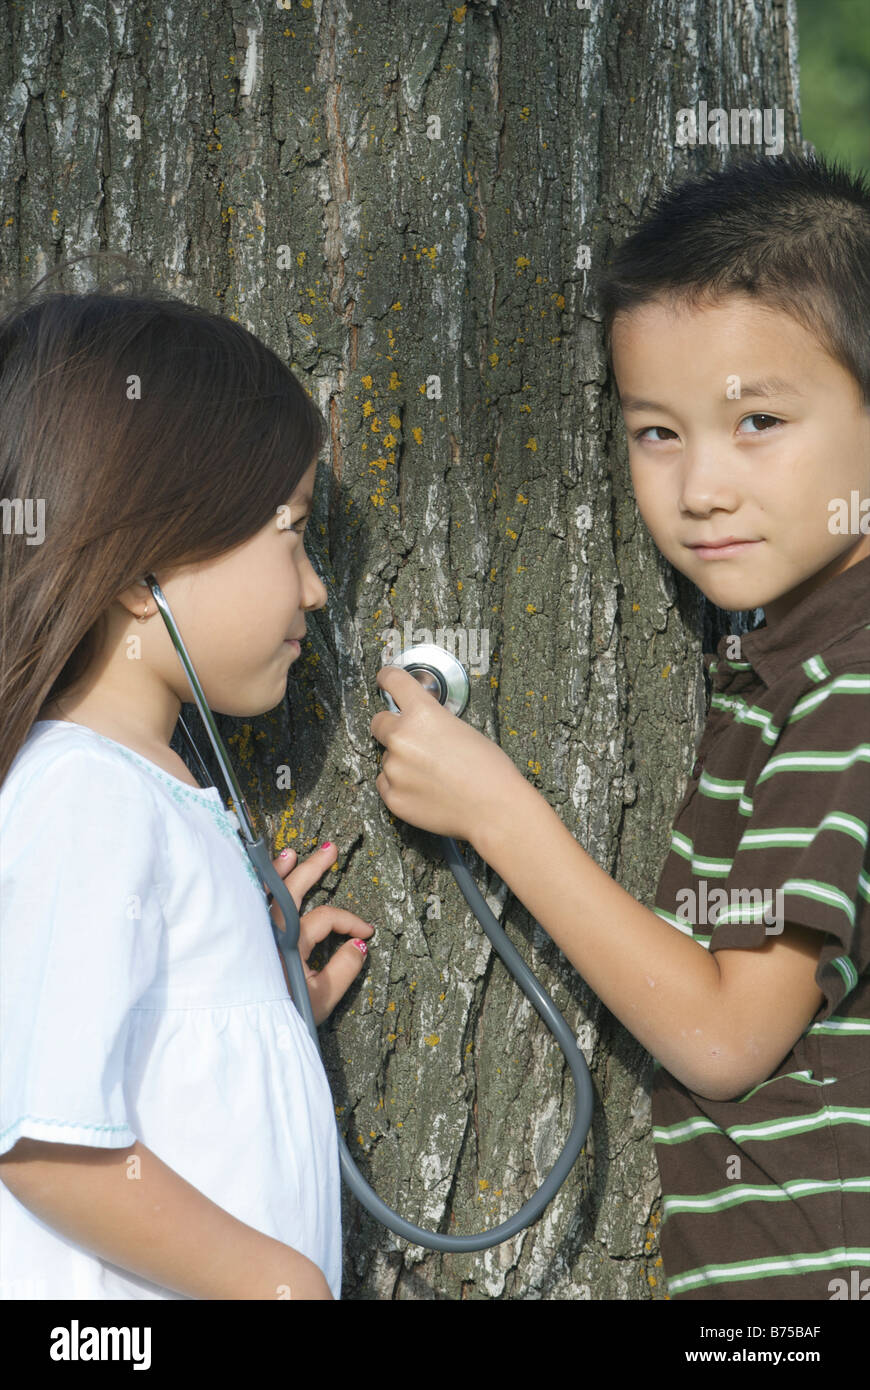 Five year old sister and seven year old brother with stethescope on tree, Winnipeg, Canada Stock Photo